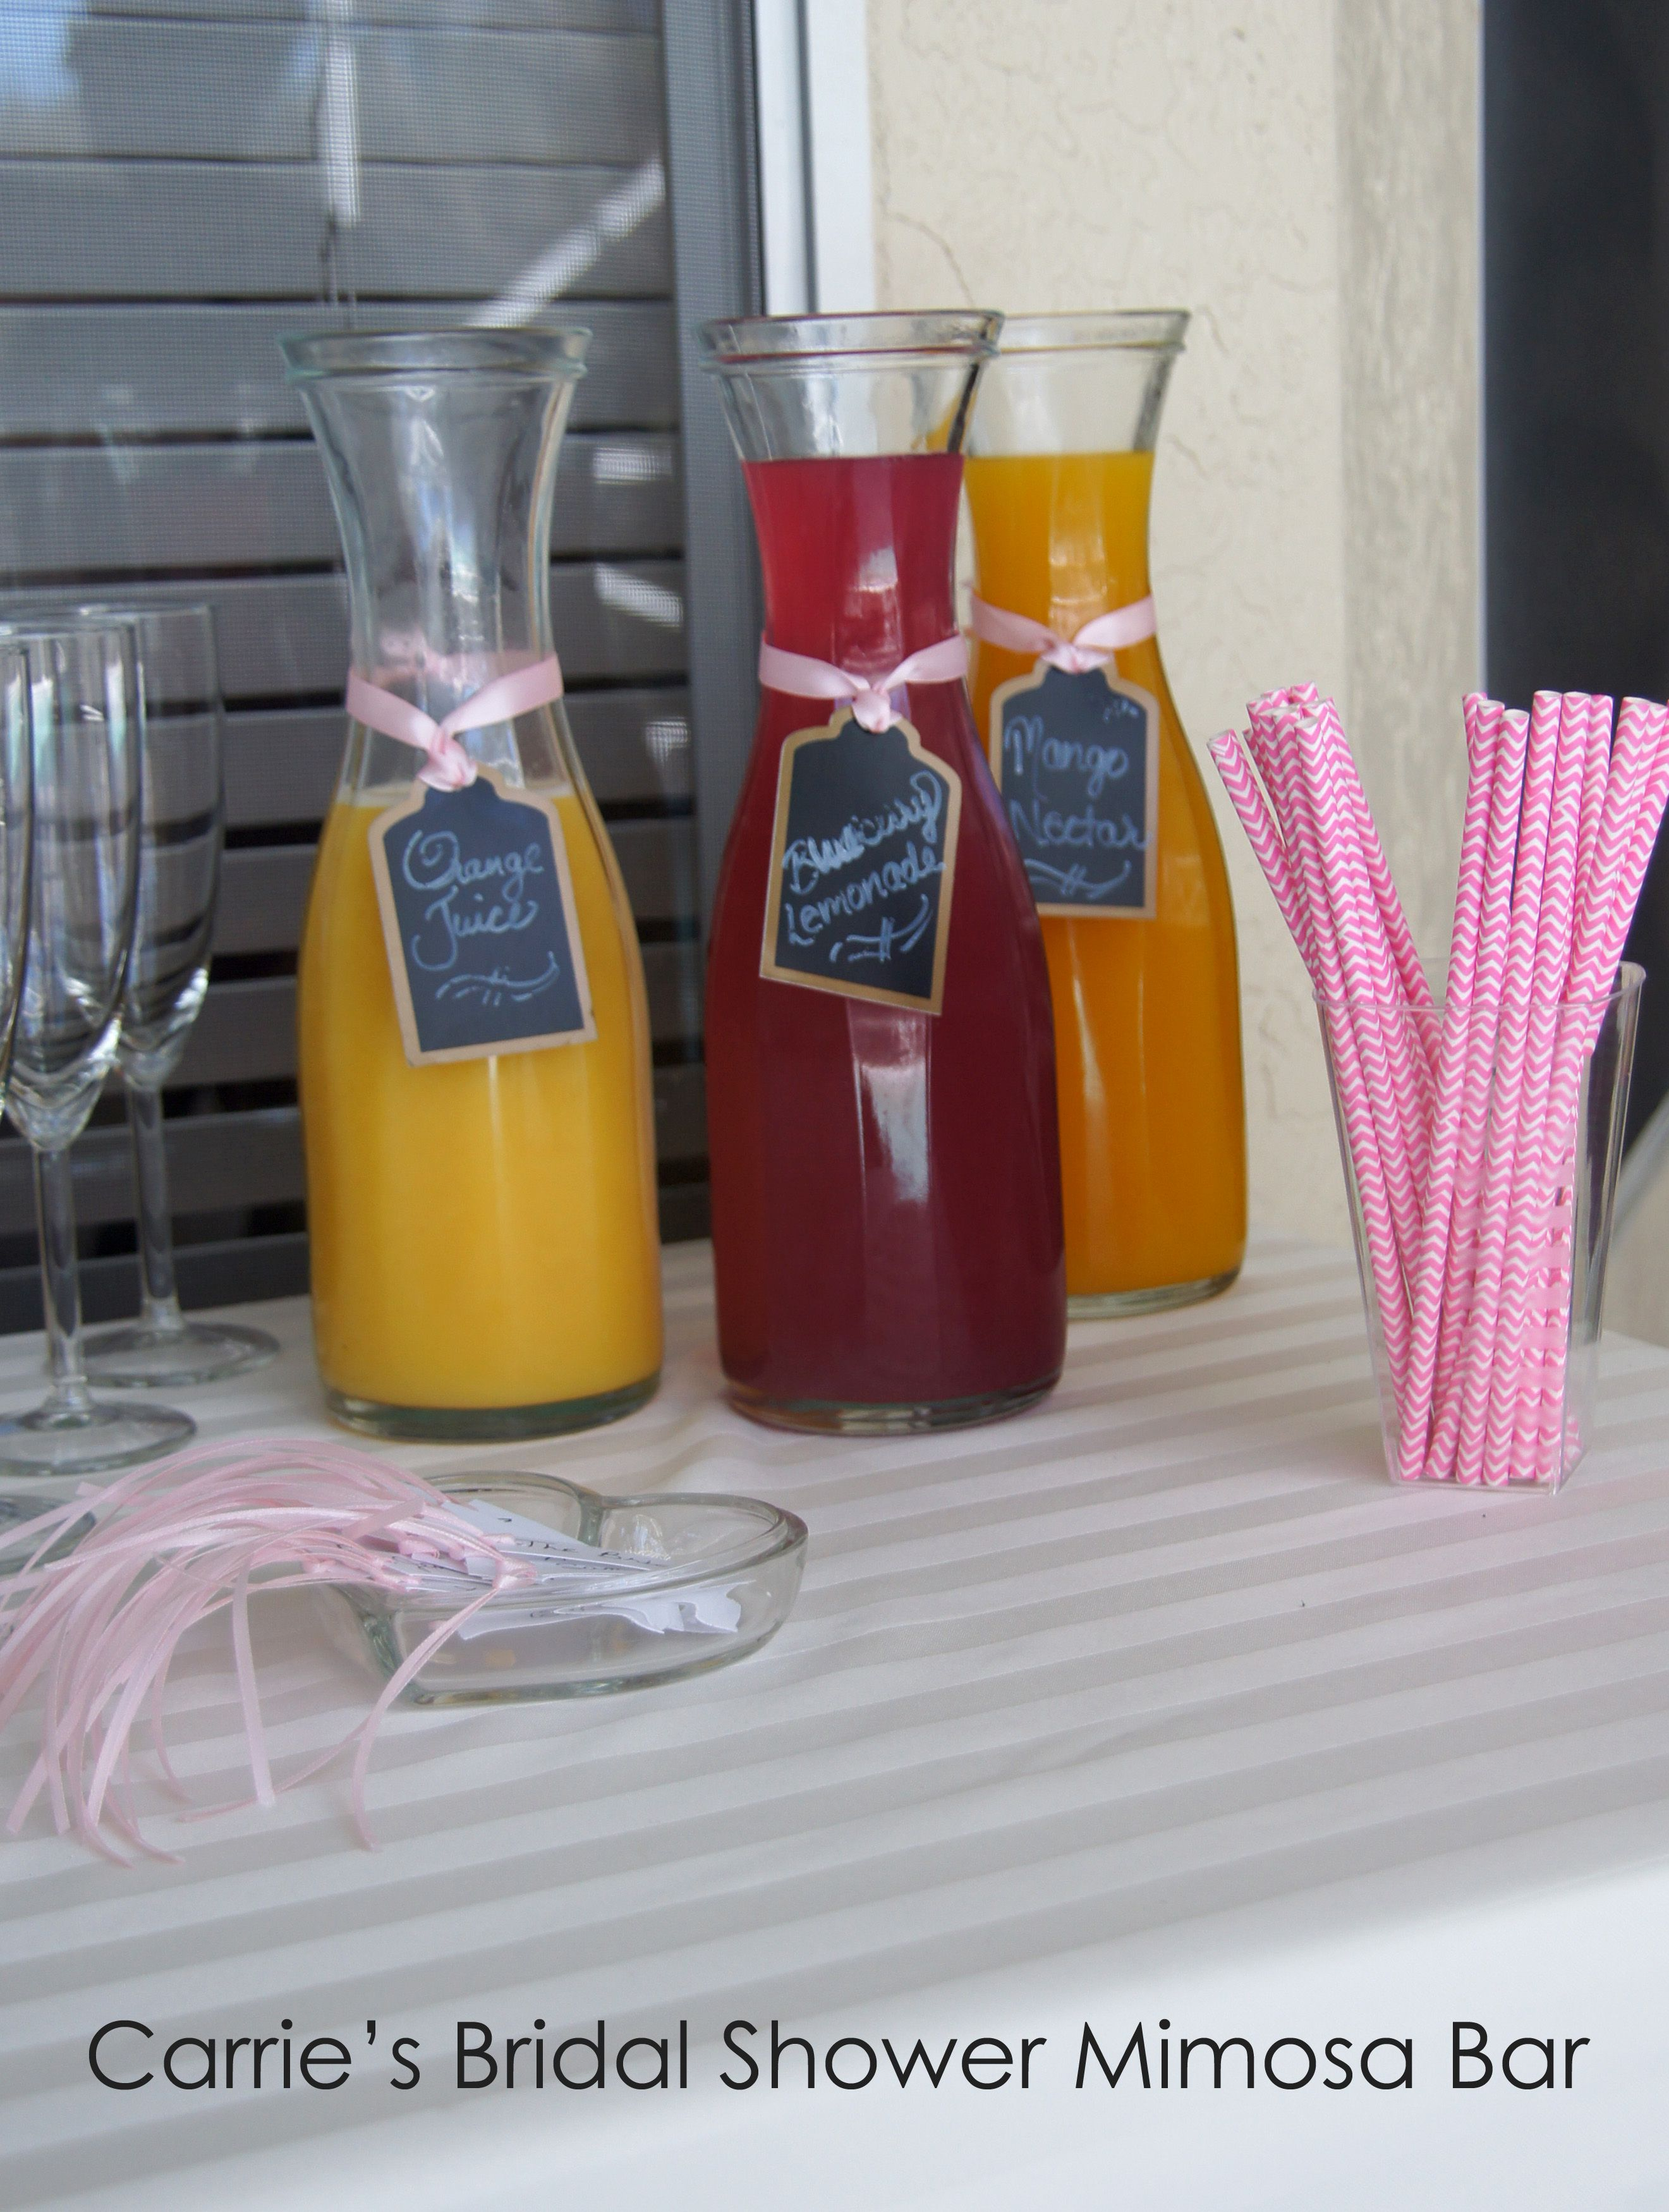 Mimosa Bar - Fruit Juices in Ikea carafe, striped straws, champagne glass markers for Bridal Shower